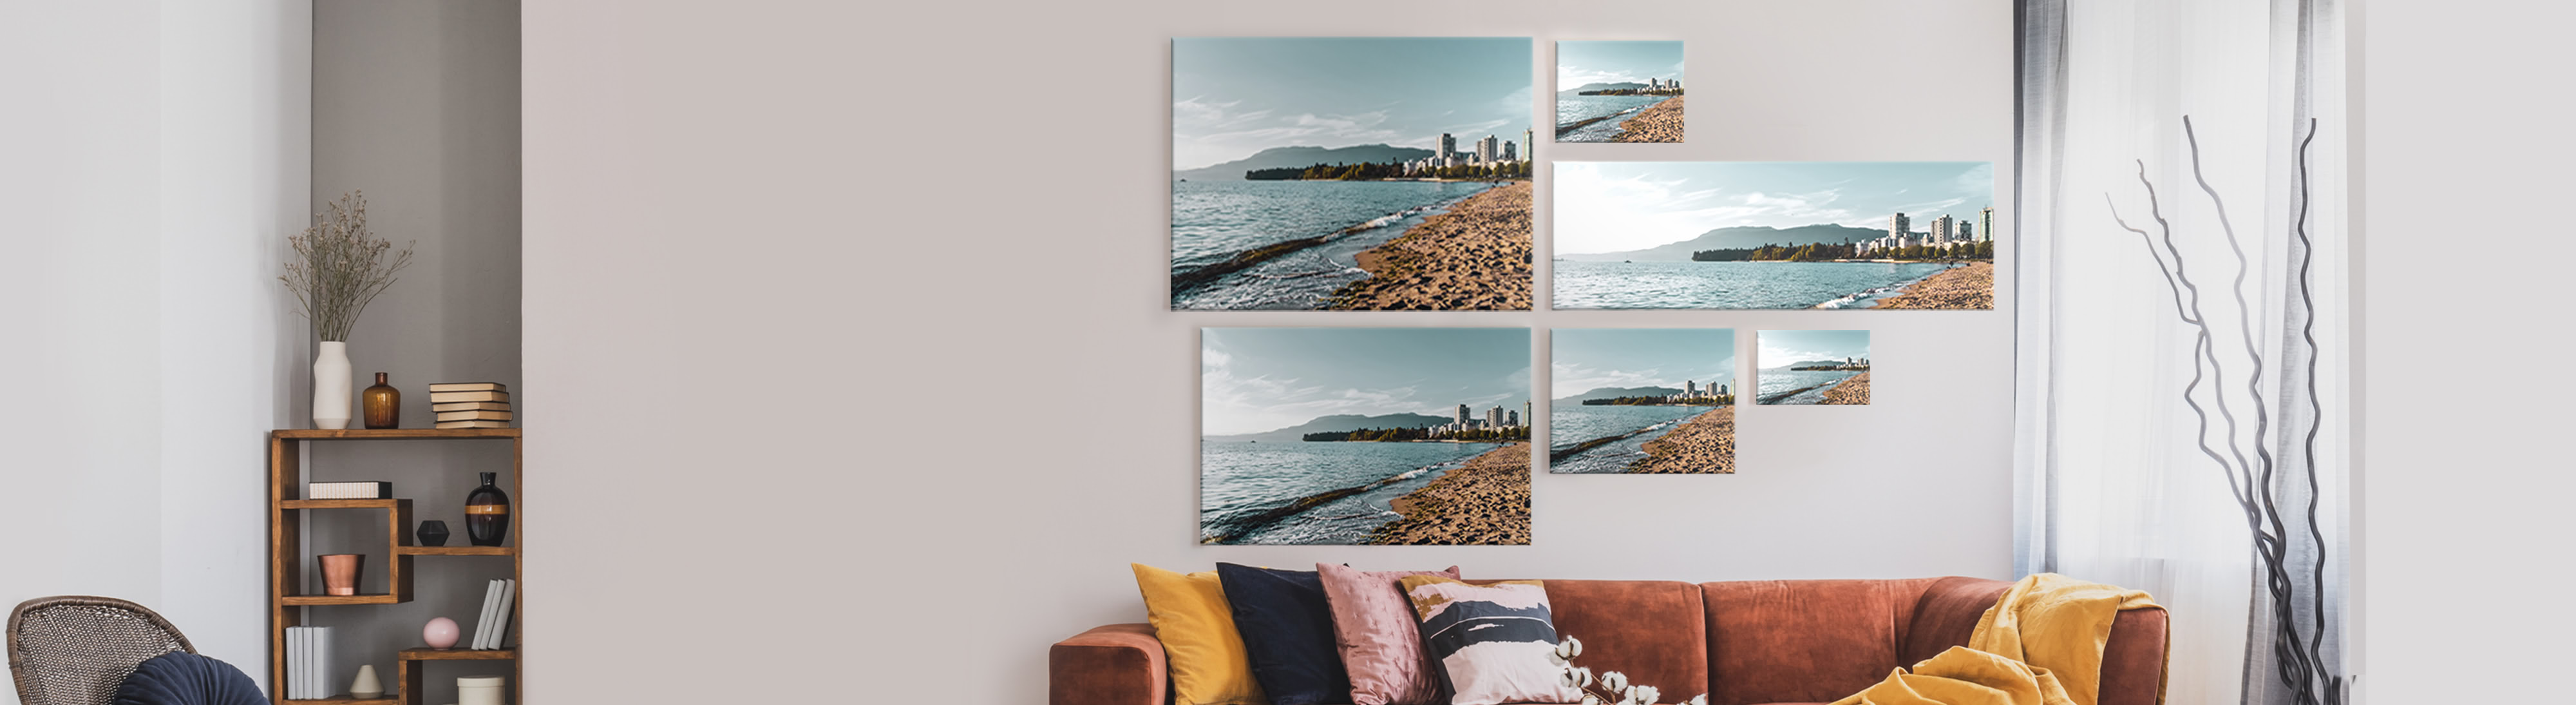 Canvas print size options